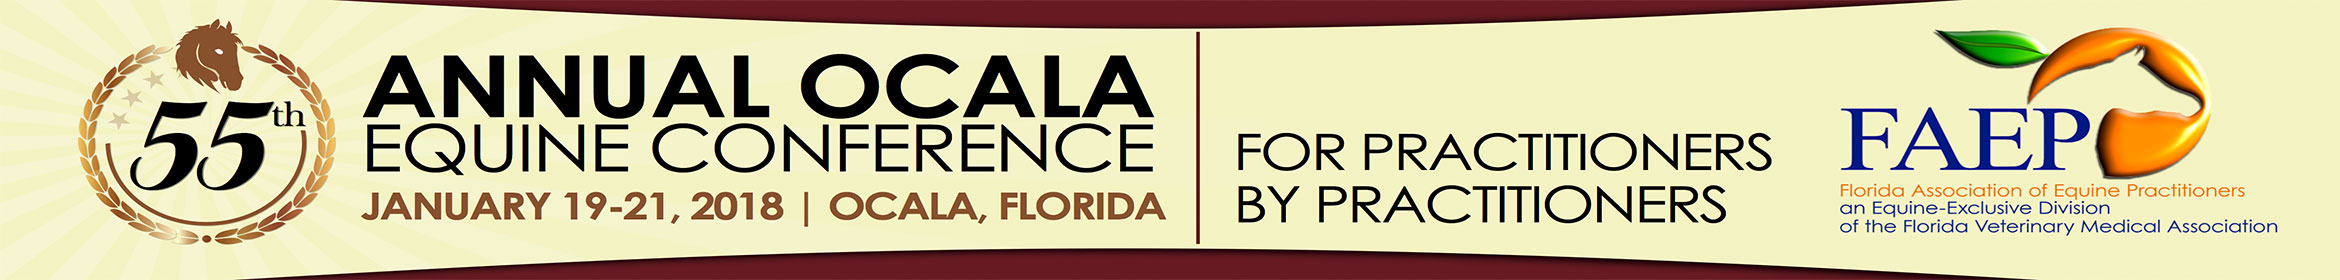 2018 55th Annual FAEP Ocala Equine Conference Main banner